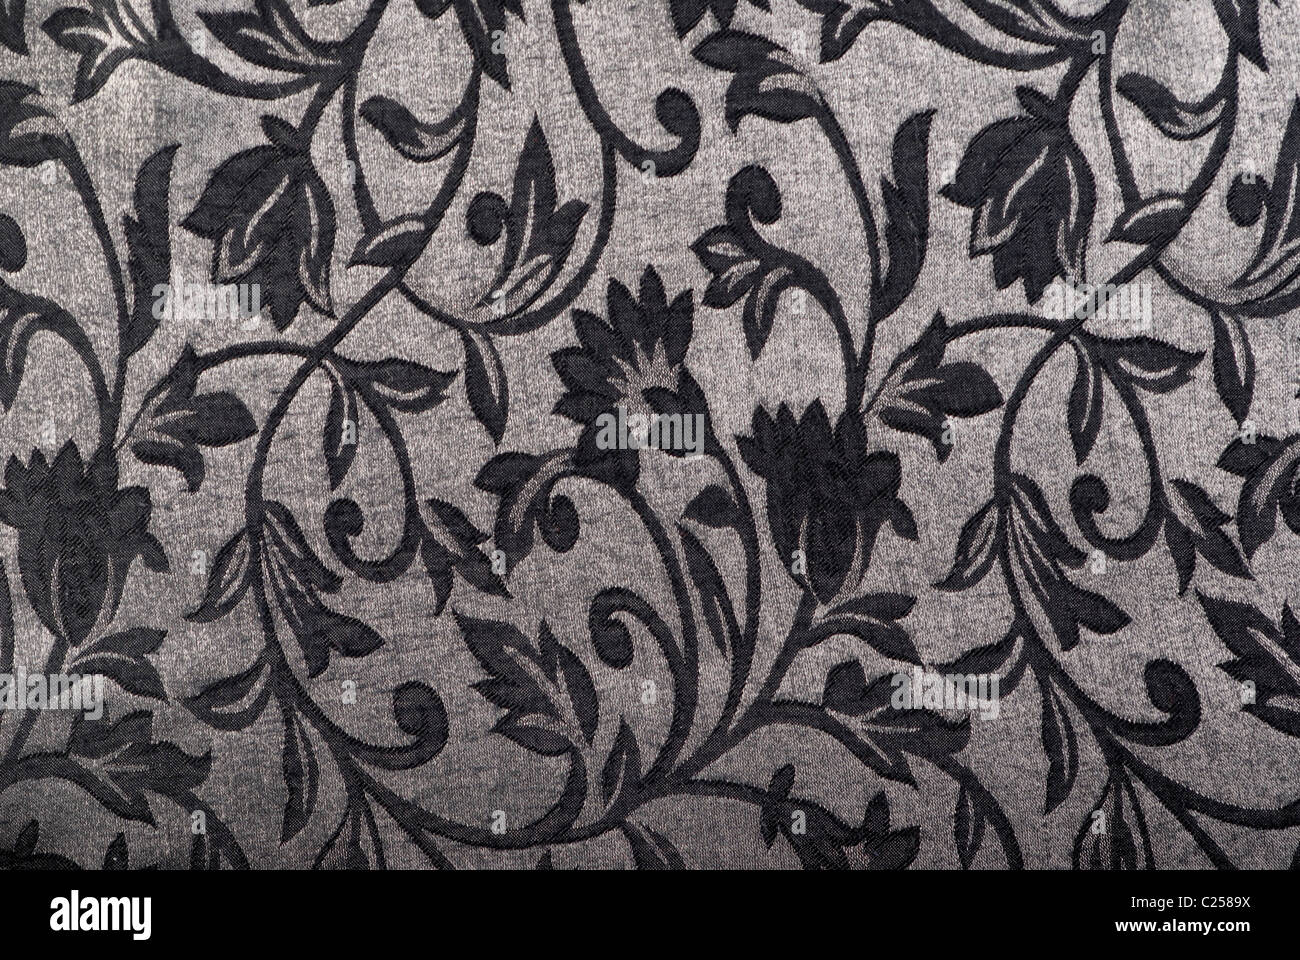 Silver / gray tapestry fabric. - Stock Image